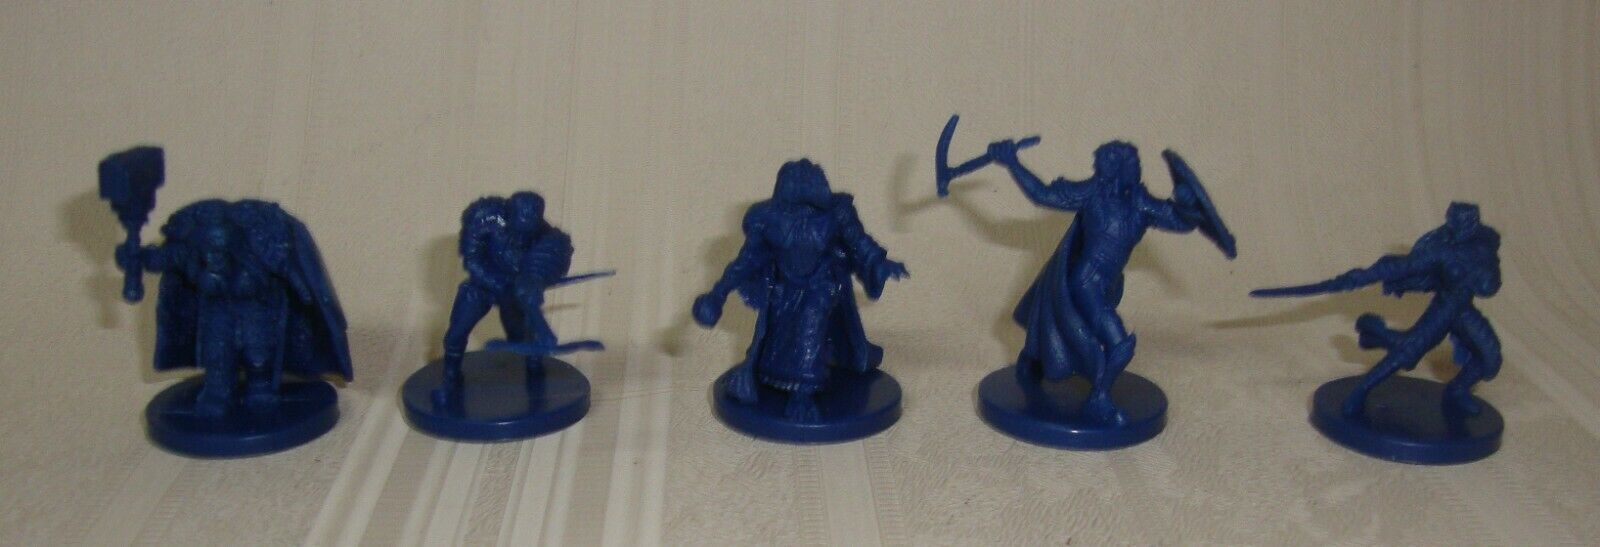 Primary image for D&D Characters Miniatures Wrath of Ashardalon Dragonborn Dwarf Half-Orc Elf more